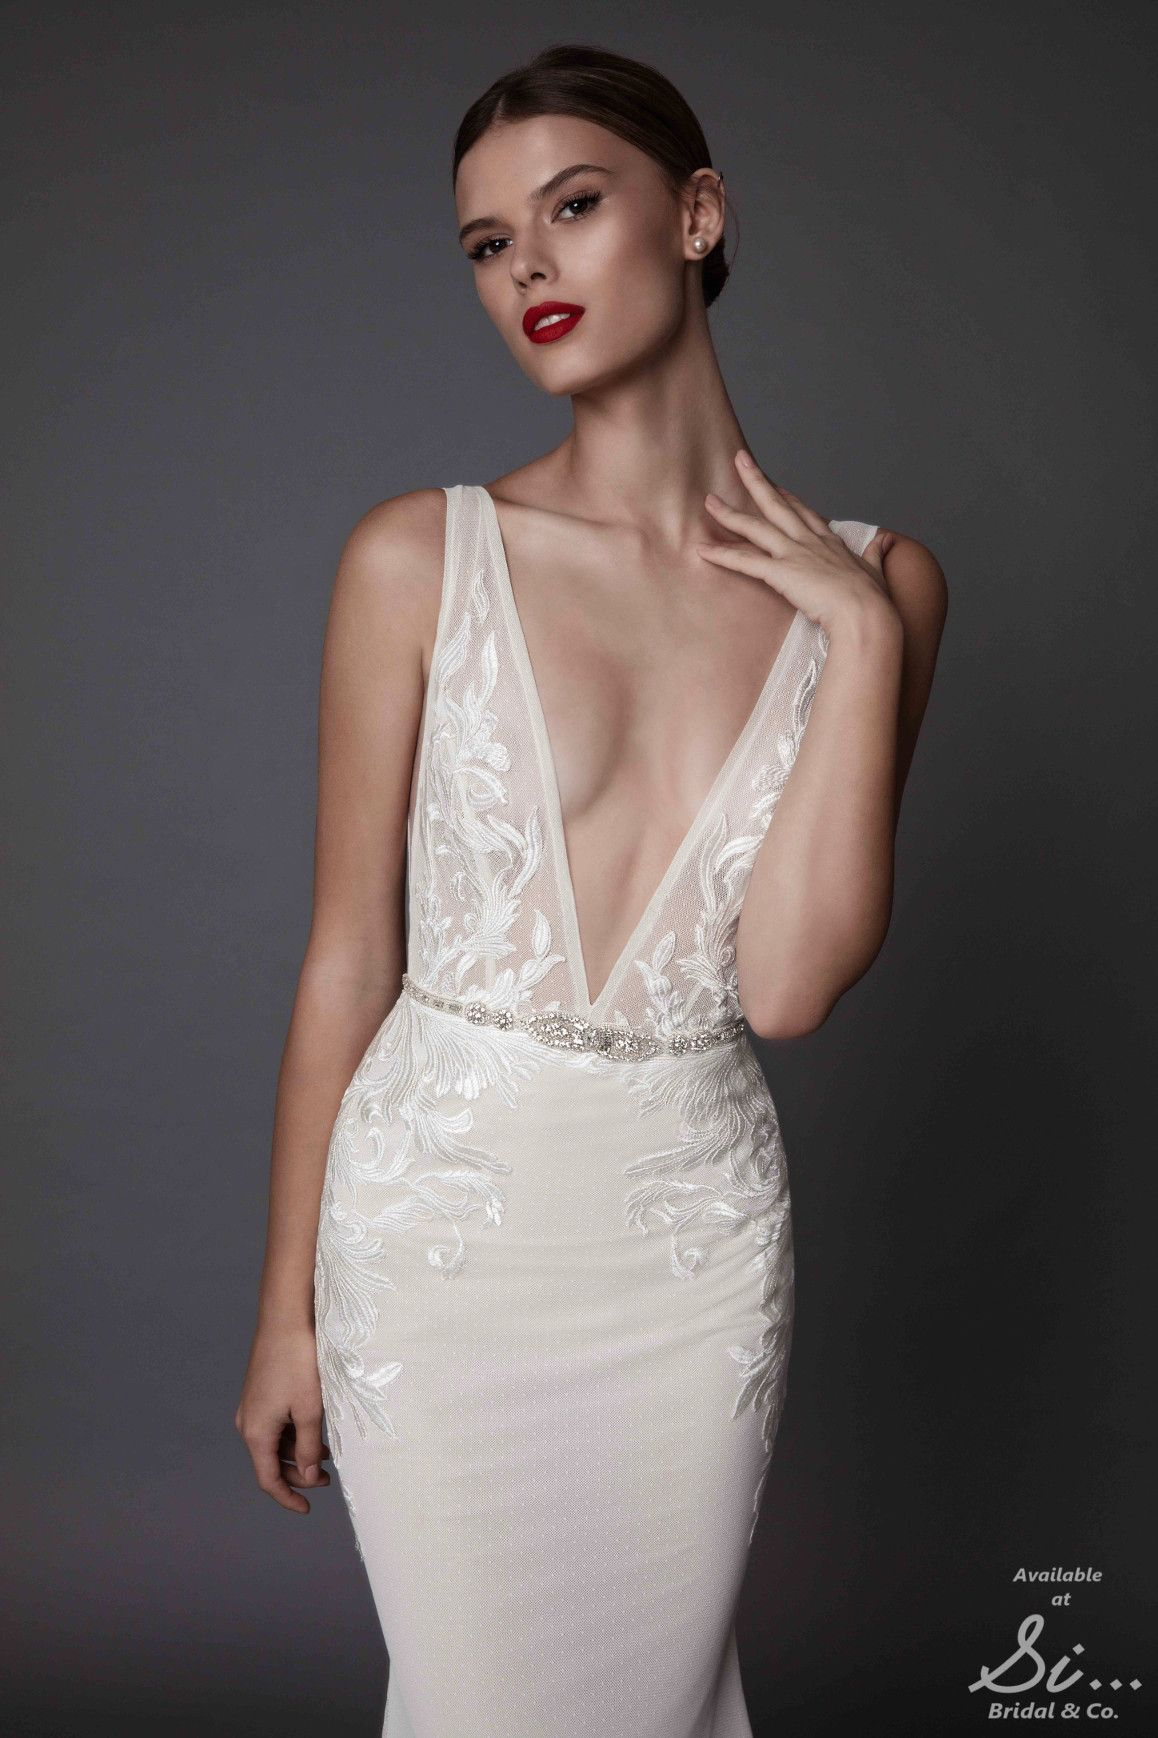 Muse by BERTA bridal | too much skin for wedding dress but pretty ...